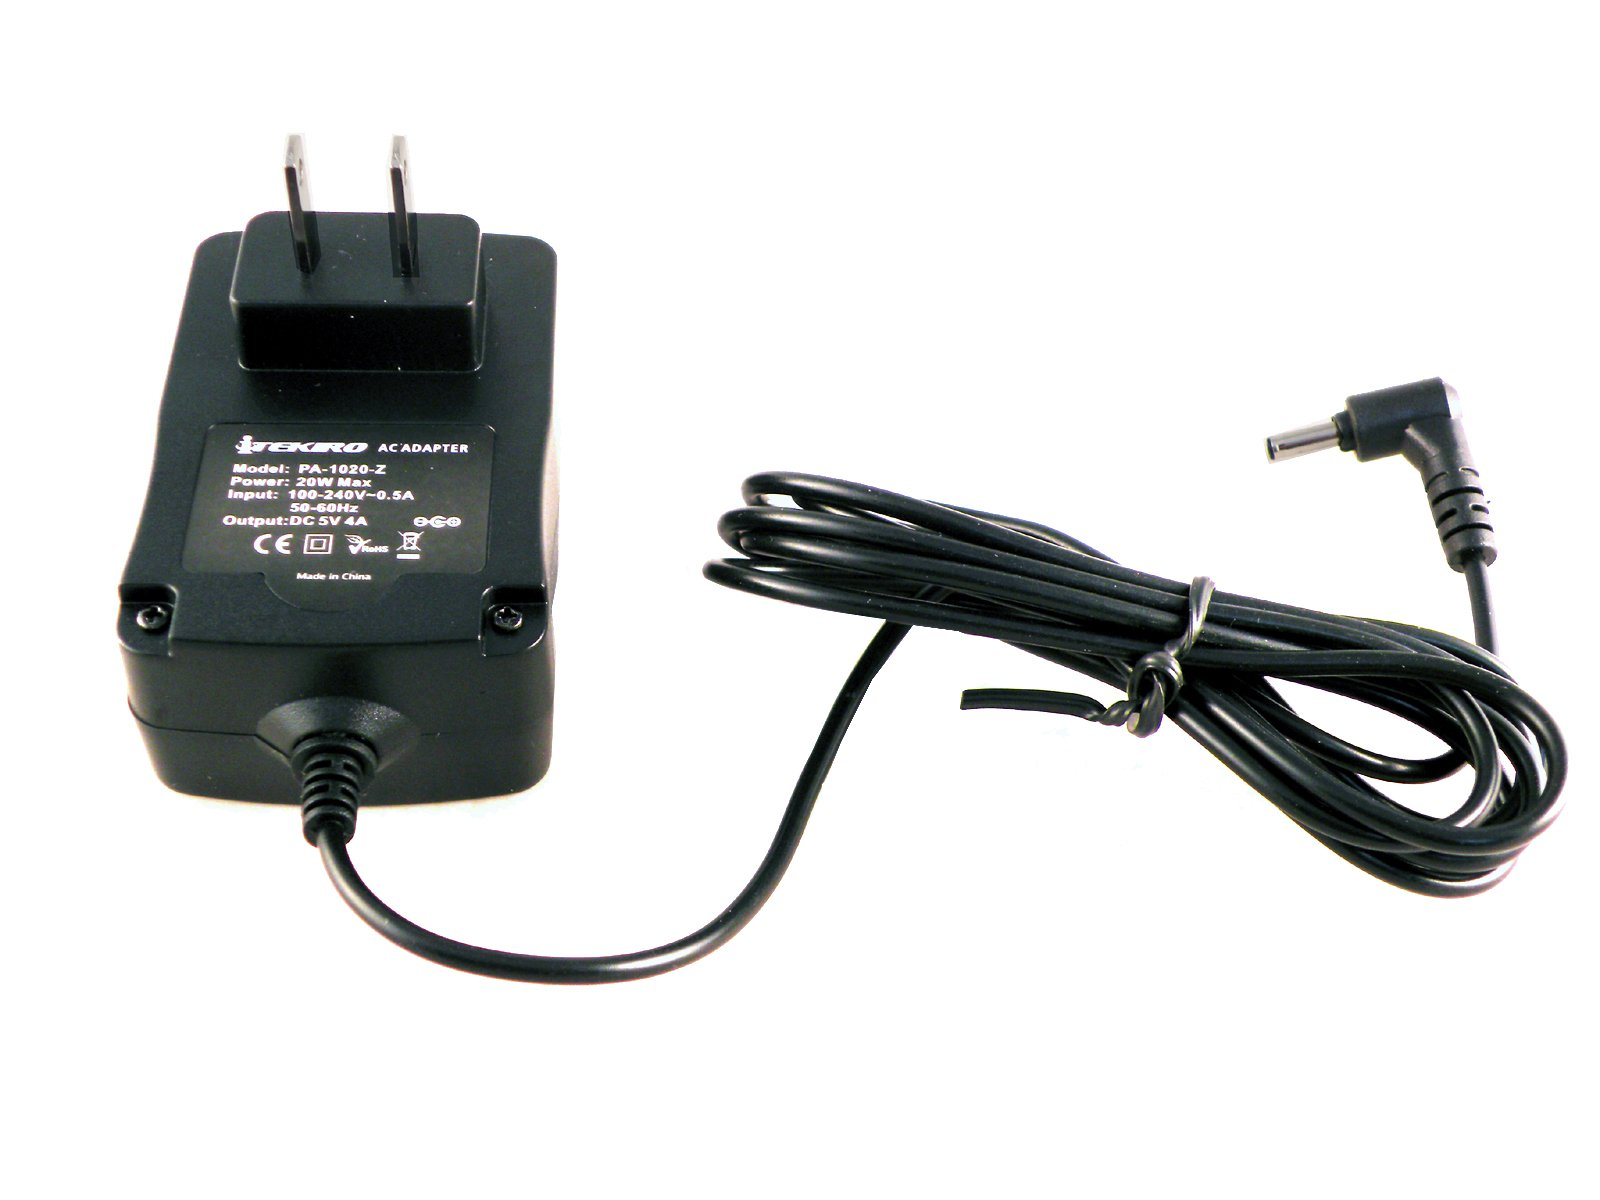 iTEKIRO 6.5 Ft Wall Charger for Nextbook Flexx 8.9'' (Flexx 9 NXW9QC132), 10.1'' (Flexx 10 NXW101QC232), 11.6'' (Flexx 11 NXW116QC264T), Ares 11.6'' (Ares 11 NXA116QC164) 2-in-1 Tablet (Right Angle Tip)